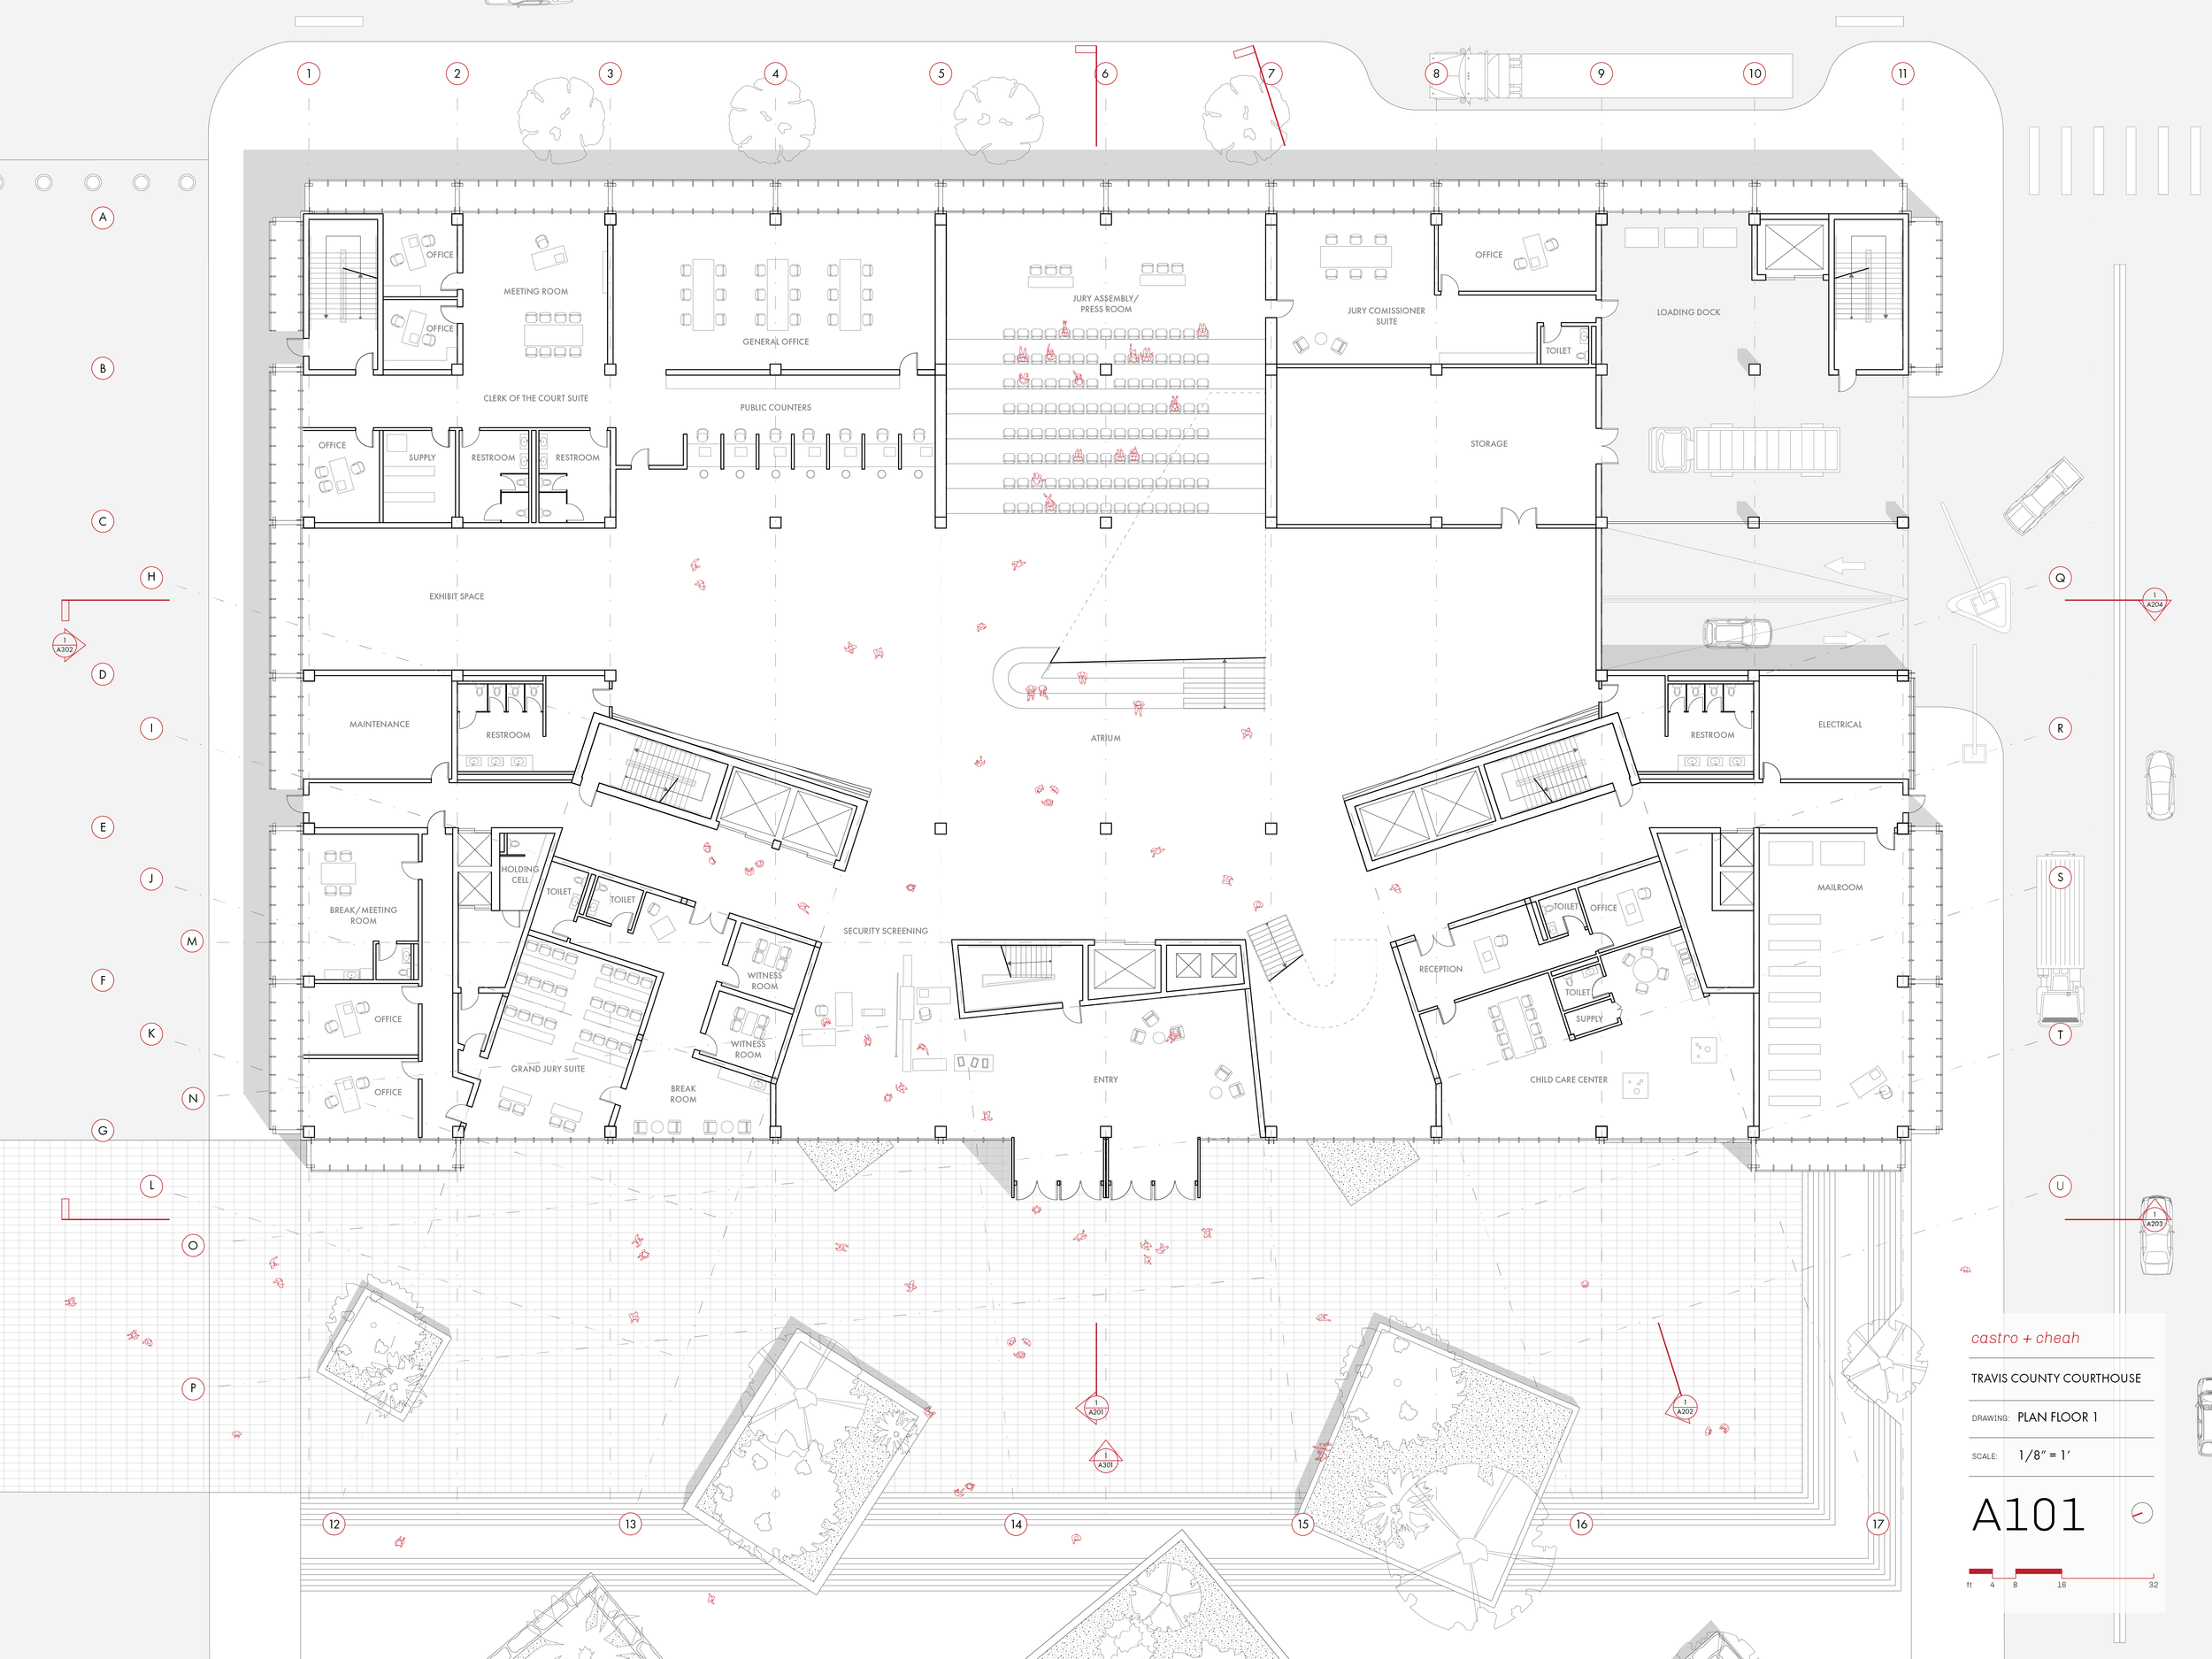 A101_FloorPlan01-01.png